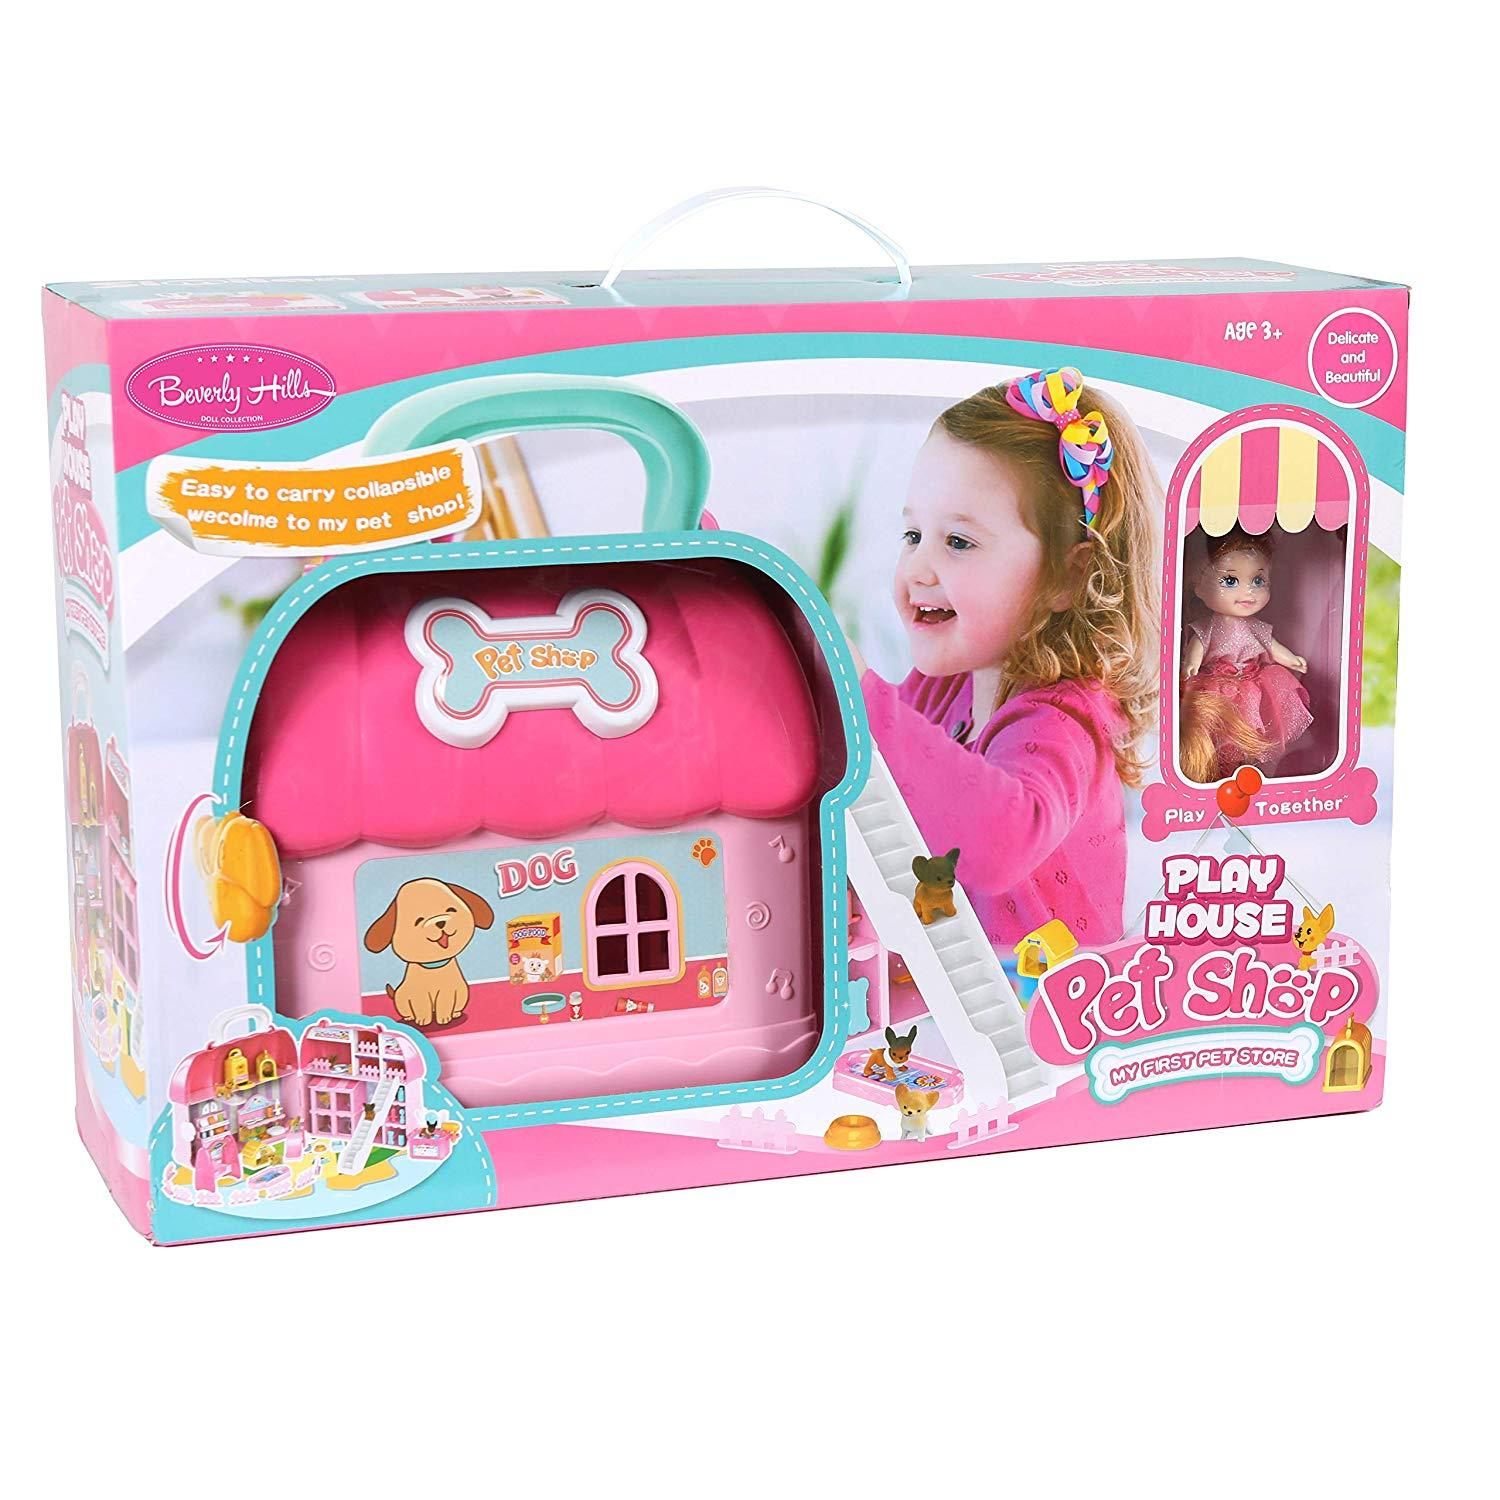 and Doll Fully Furnished 50 Piece Dollhouse Set with Accessories Beverly Hills Boutique Clothing Shop in a Take Along Carry Case